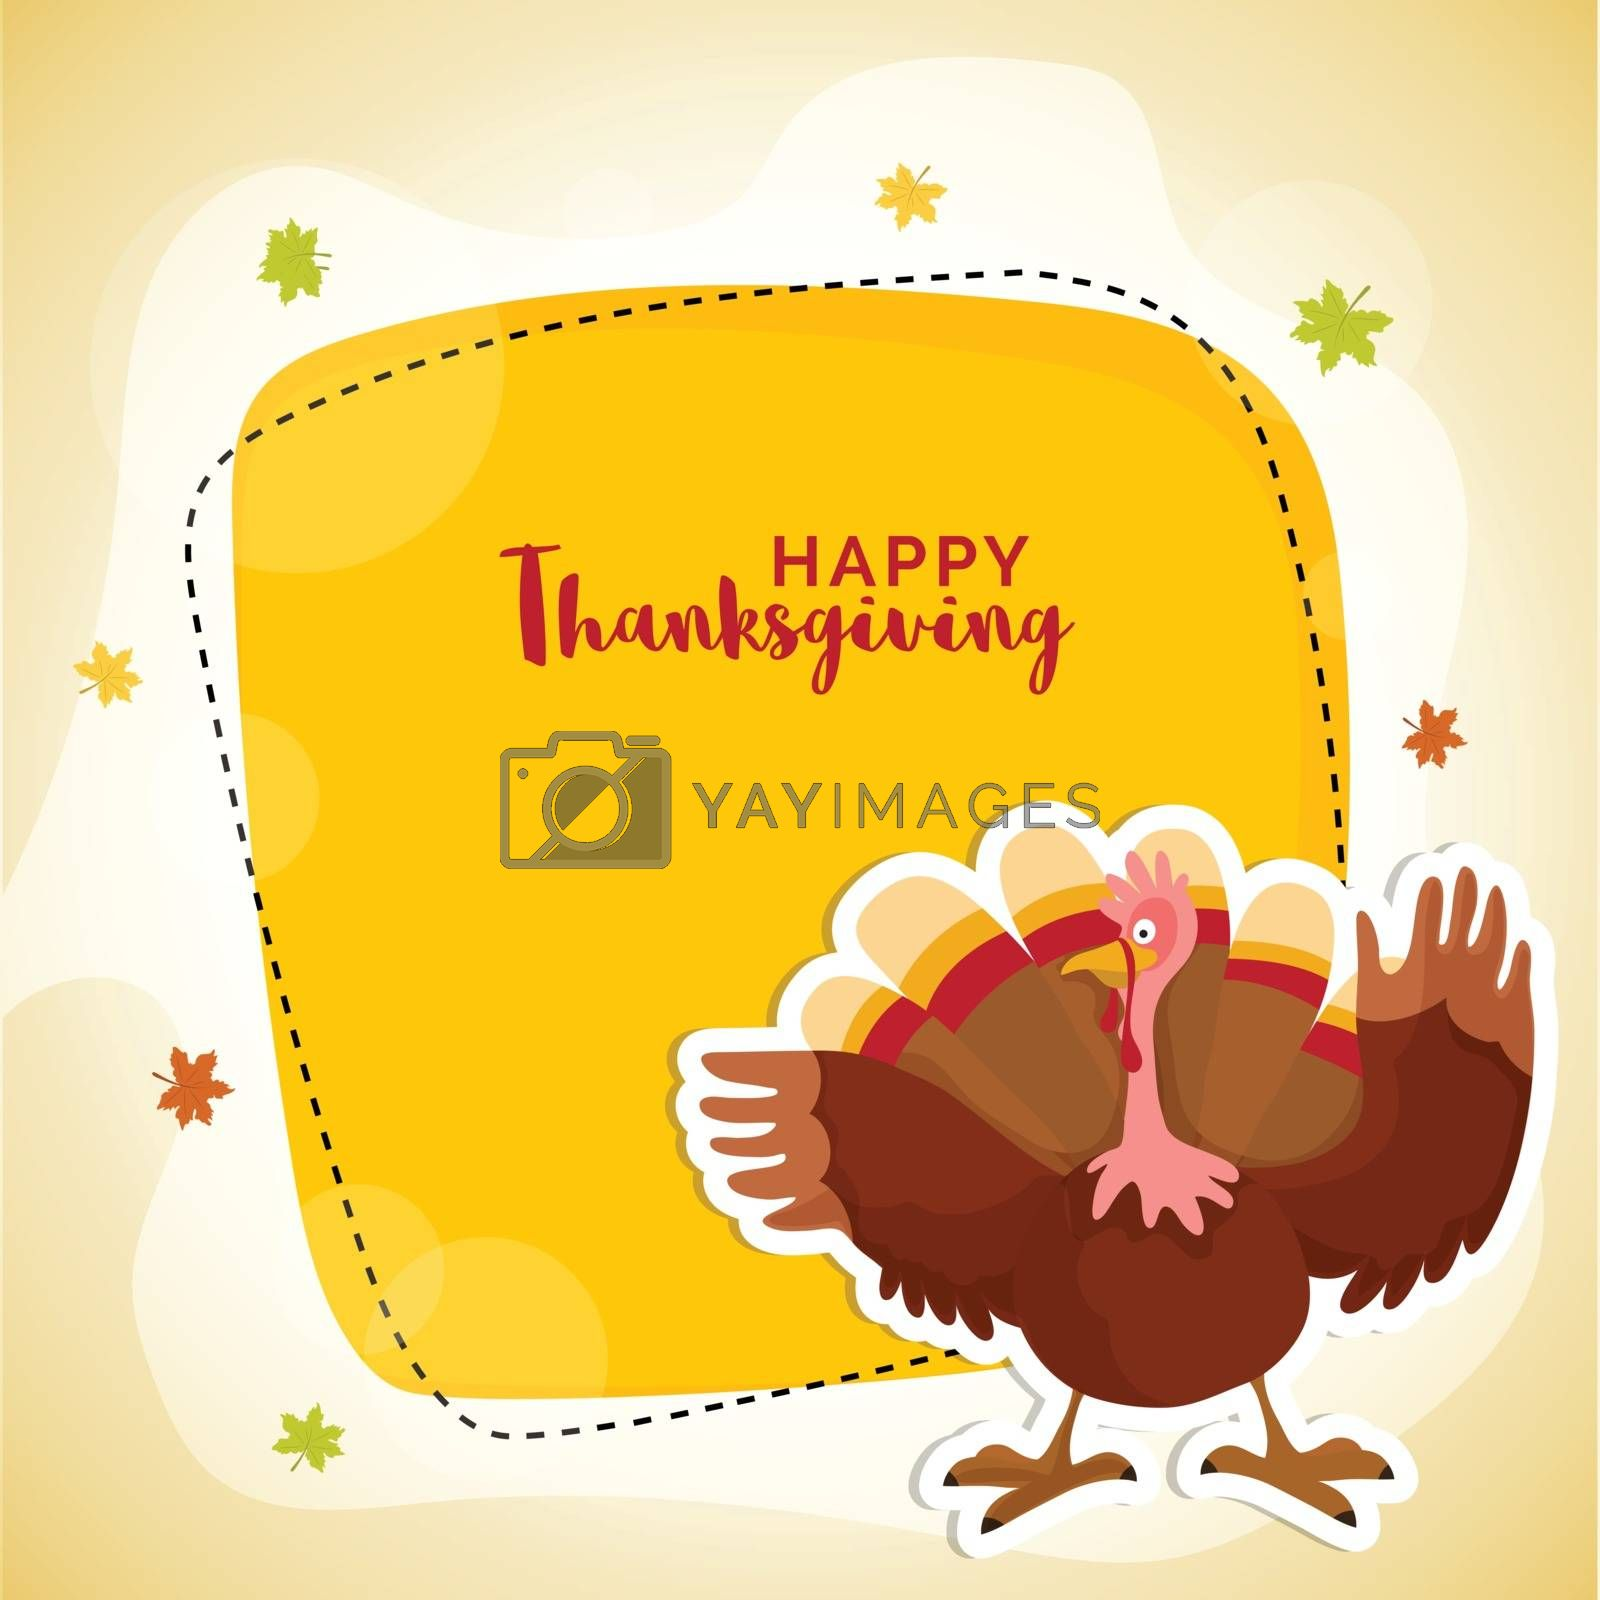 Elegant greeting card design with illustration of a turkey bird on maple leaves decorated background for Happy Thanksgiving Day celebration.